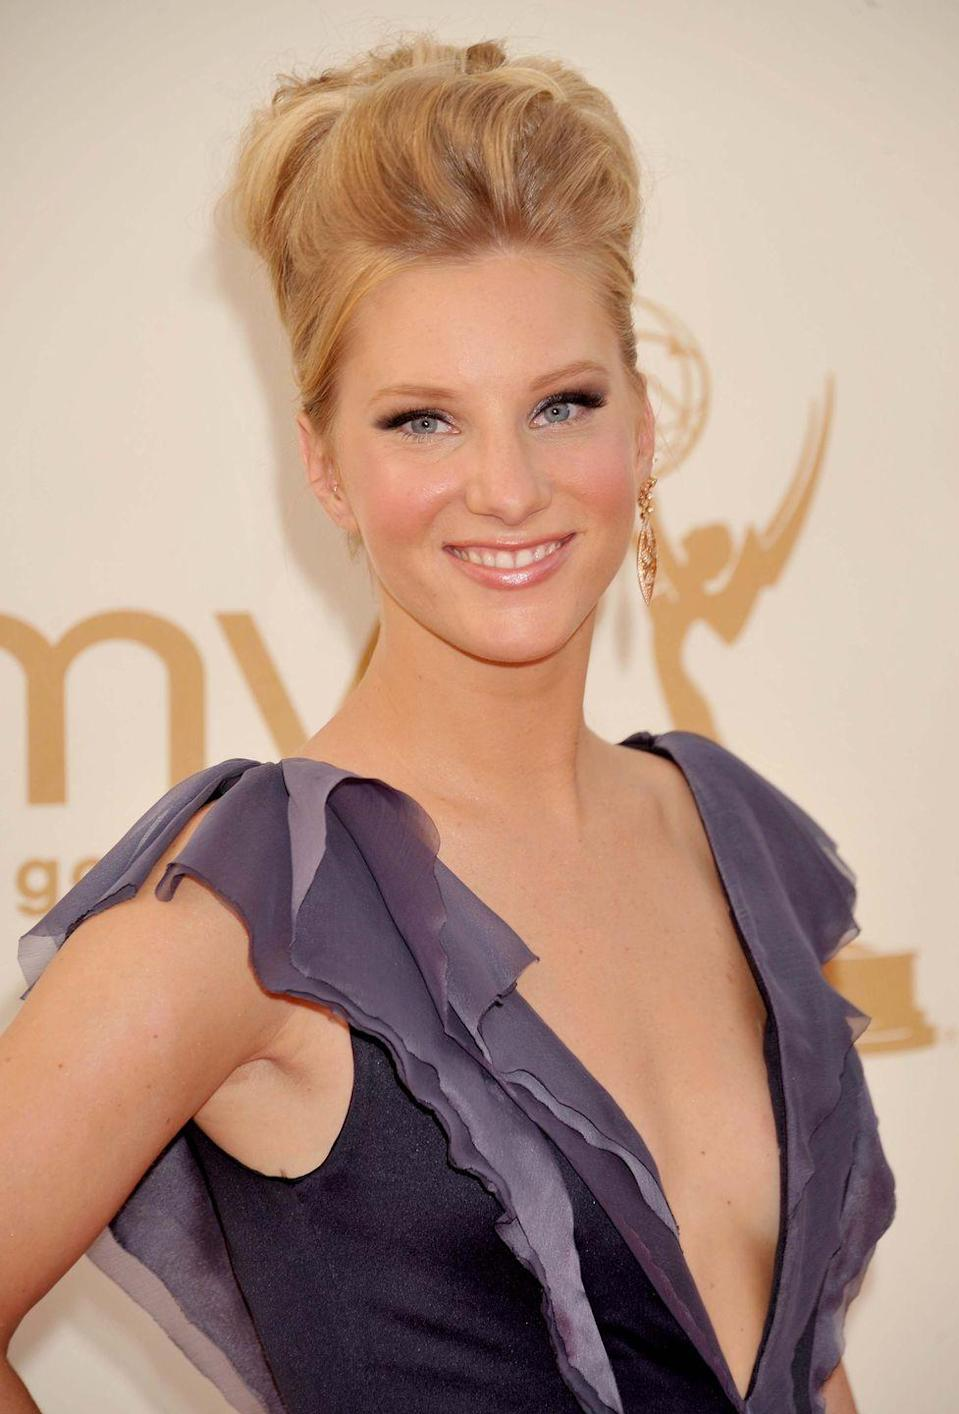 "<p><em>Glee </em>star and dancer Heather Morris grew out of her breast implants, saying it was something she wanted when she was younger. ""[They] were something I thought I wanted when I was younger, and now I don't,"" she told <a href=""https://www.fitnessmagazine.com/workout/real-plans/celebrity/glee-heather-morris-fitness-magazine-interview/"" rel=""nofollow noopener"" target=""_blank"" data-ylk=""slk:Fitness magazine"" class=""link rapid-noclick-resp""><em>Fitness</em> magazine</a> in 2011. ""It was hard being active with them, because my chest was always sore. It hurt a lot, and I didn't like always being in pain, so they had to go!""</p>"